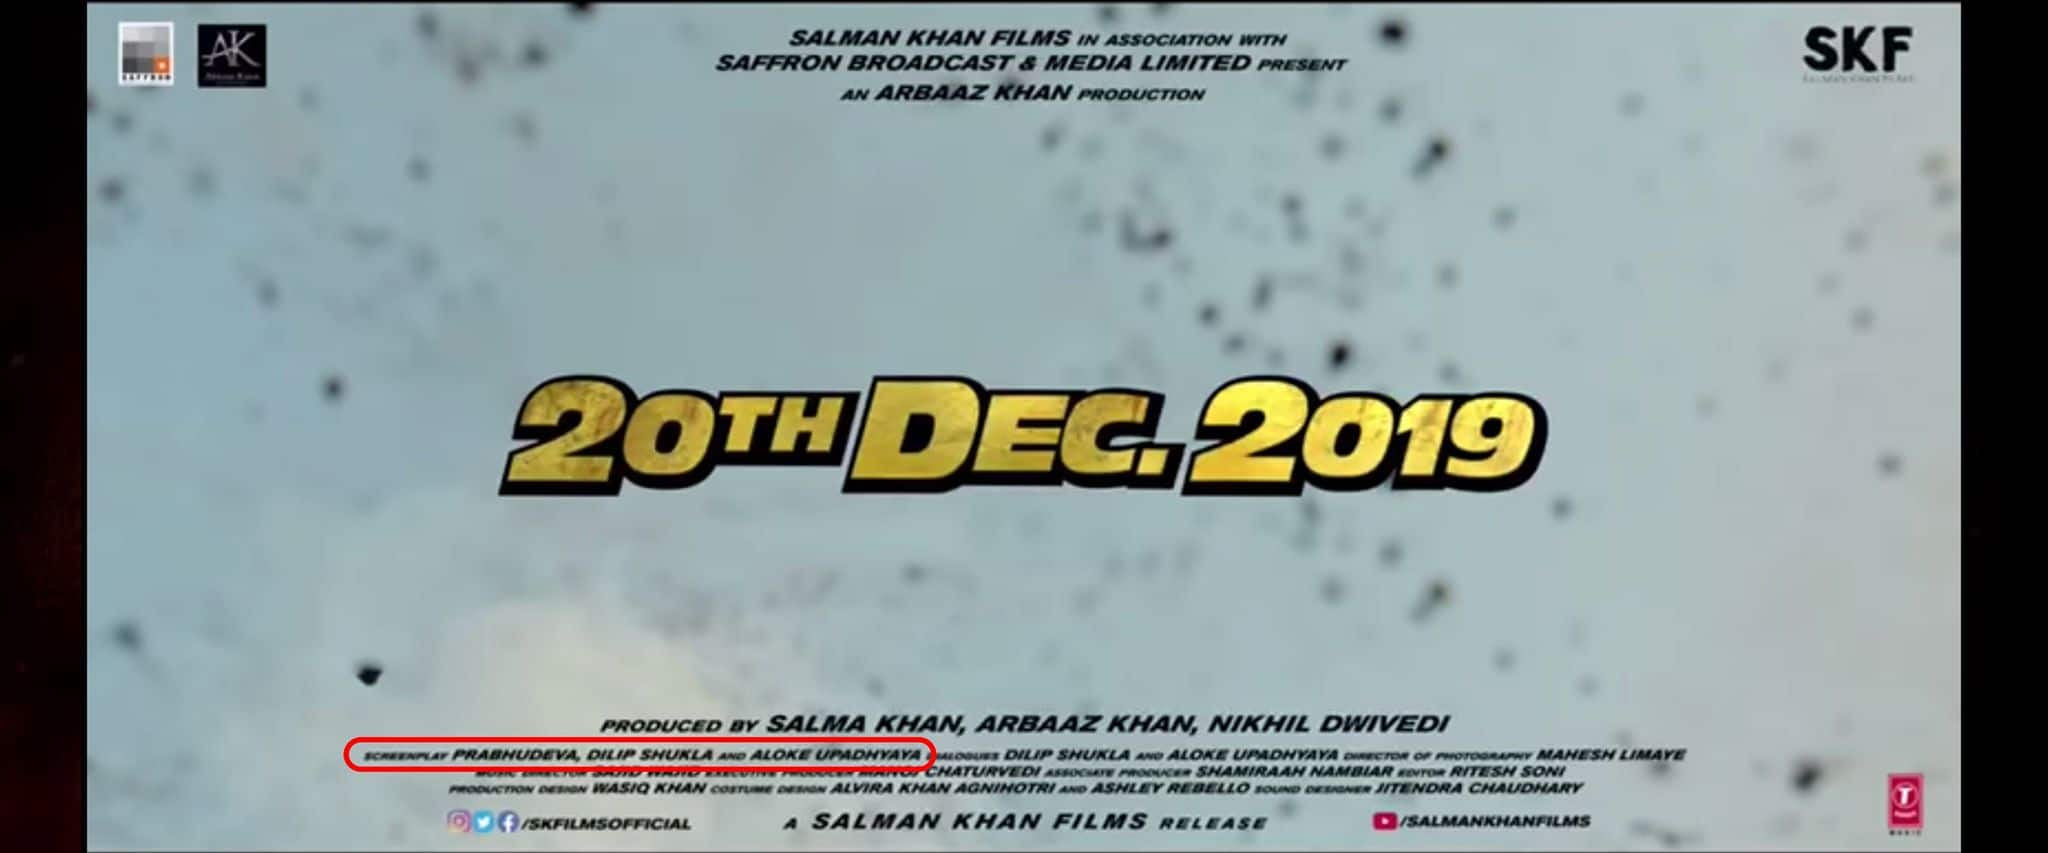 Dabangg 3 Adds Salman Khan's Name To Screenplay Credits And Drops Dilip Shukla's Name In The Trailer